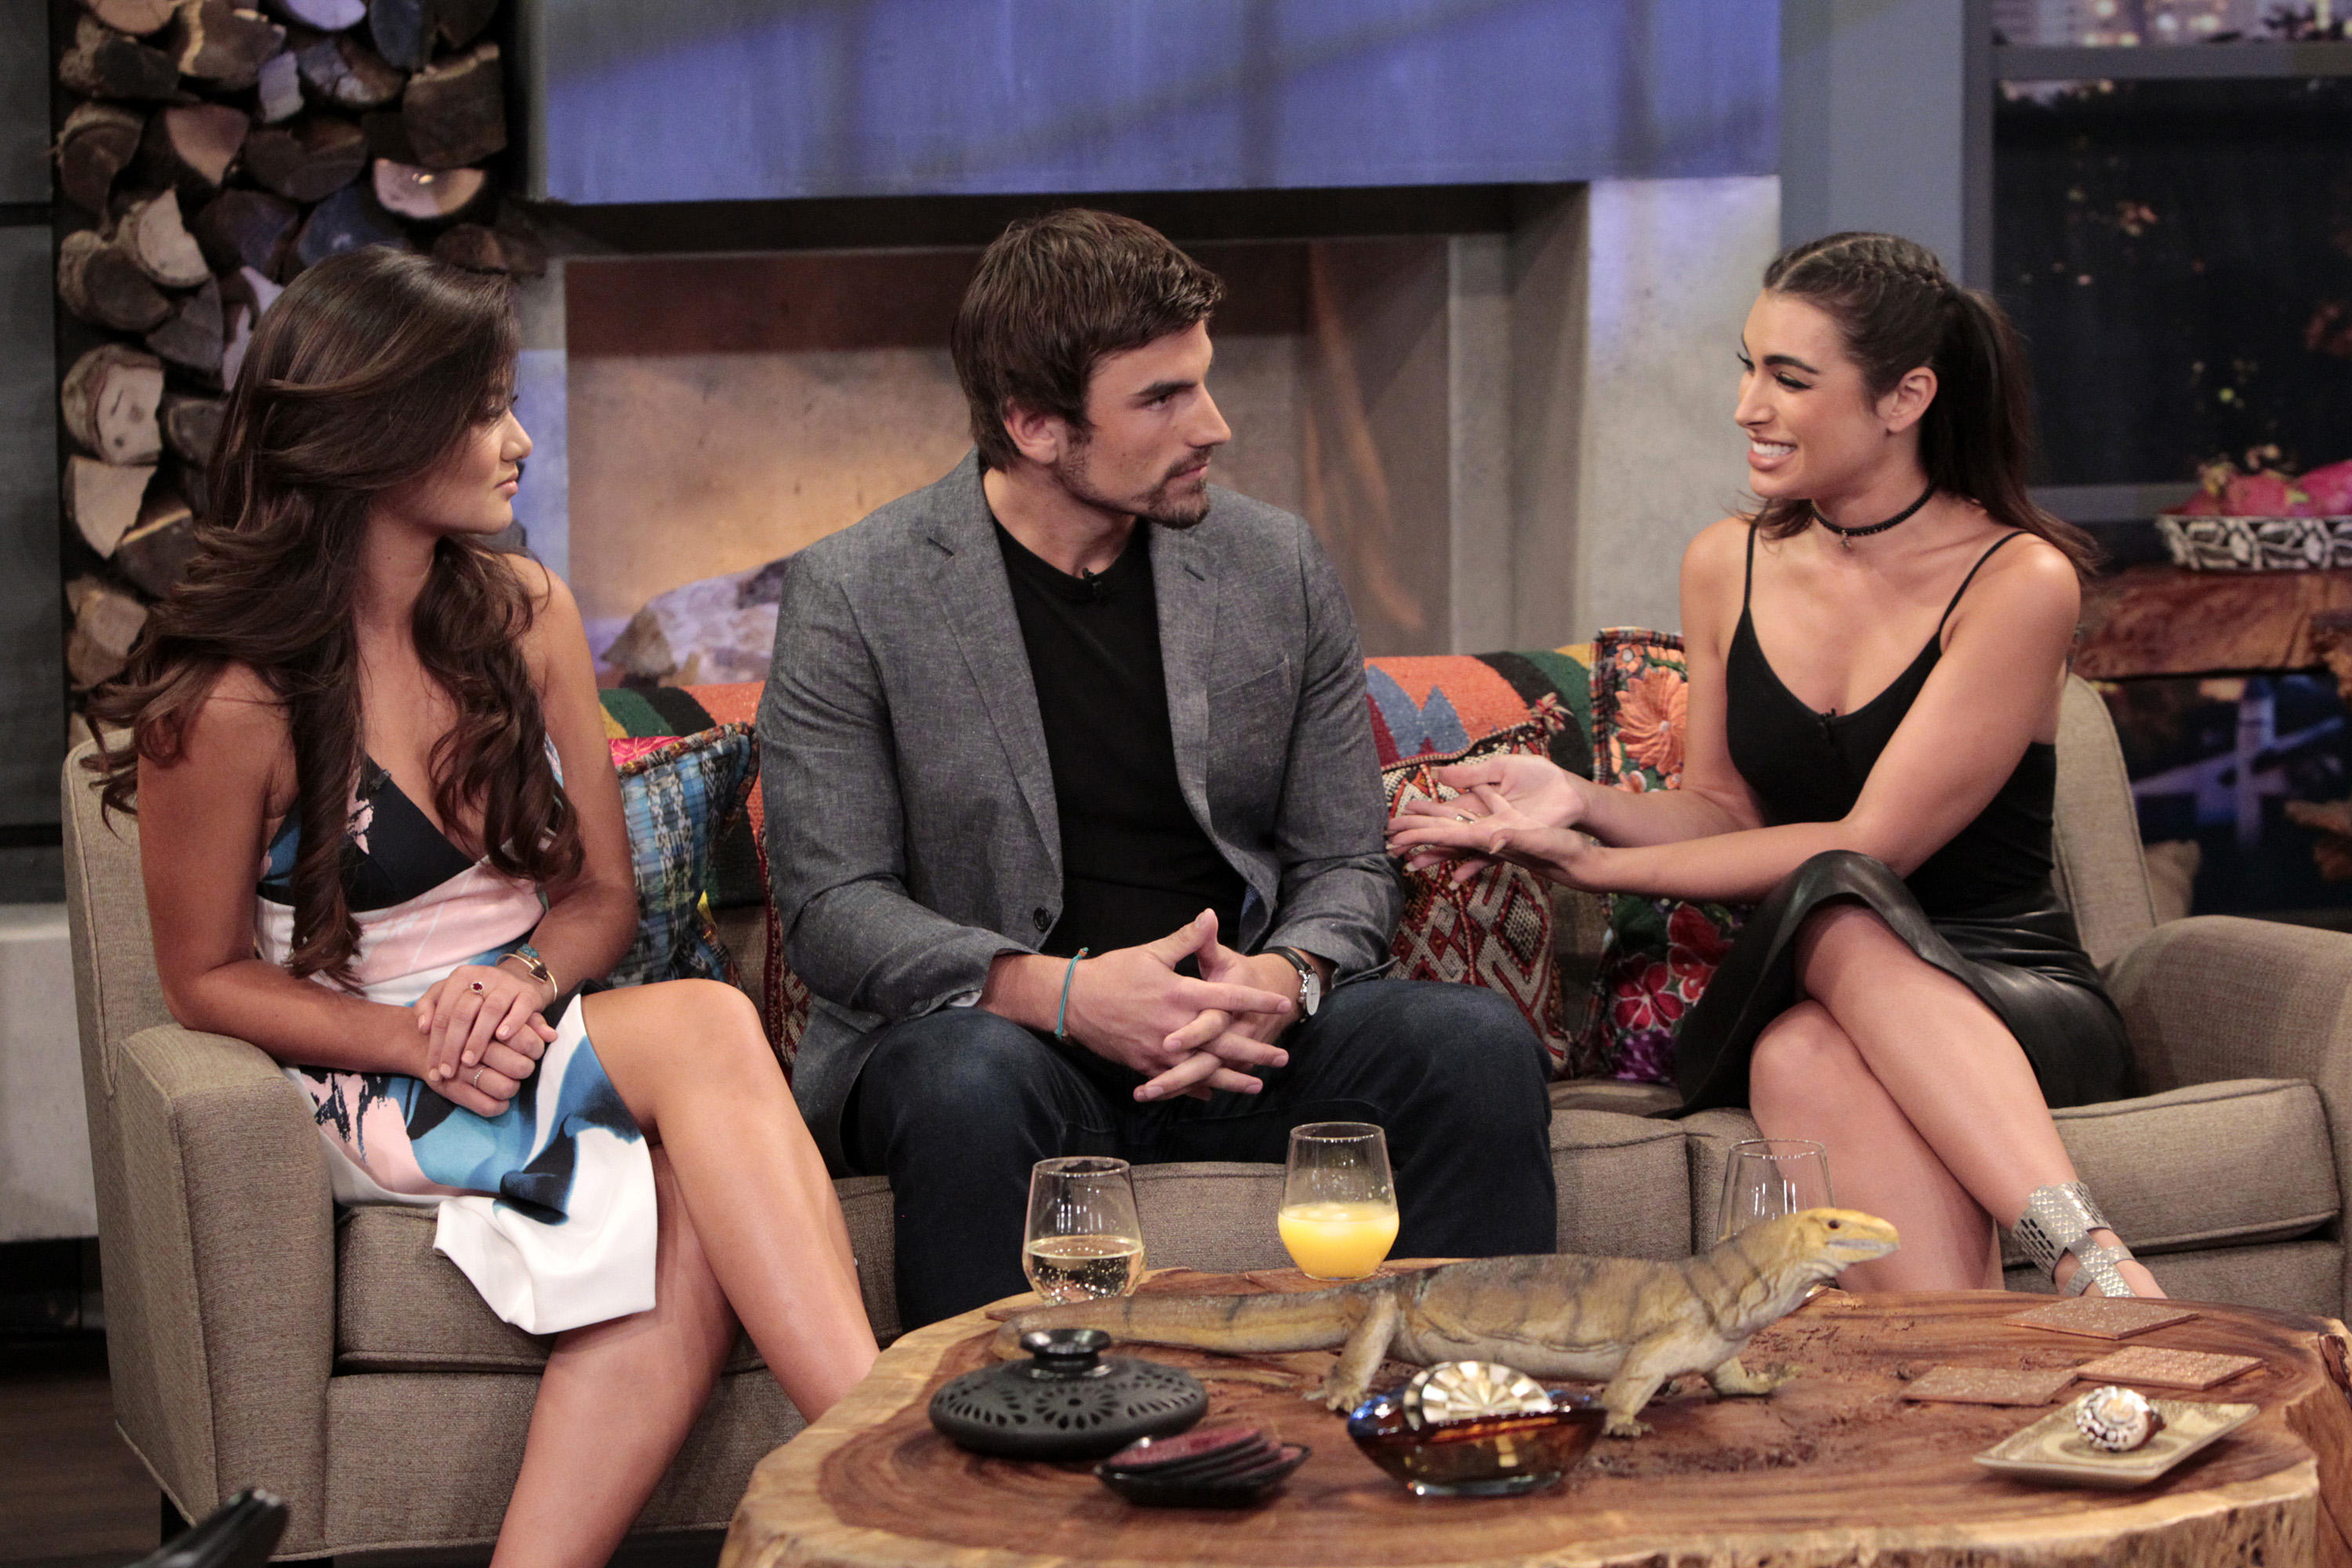 "BACHELOR IN PARADISE: AFTER PARADISE - Current ""Bachelor in Paradise"" contestants Wells, Caila and Jared, as well as Paul Scheer and Flula Borg, are panelists on ABC's hit after-show ""Bachelor in Paradise: After Paradise"" on TUESDAY, AUGUST 30 (9:00-10:00 p.m. EDT), following ""Bachelor in Paradise."" (ABC/Rick Rowell) CAILA QUINN, JARED HAIBON, ASHLEY IACONETTI"